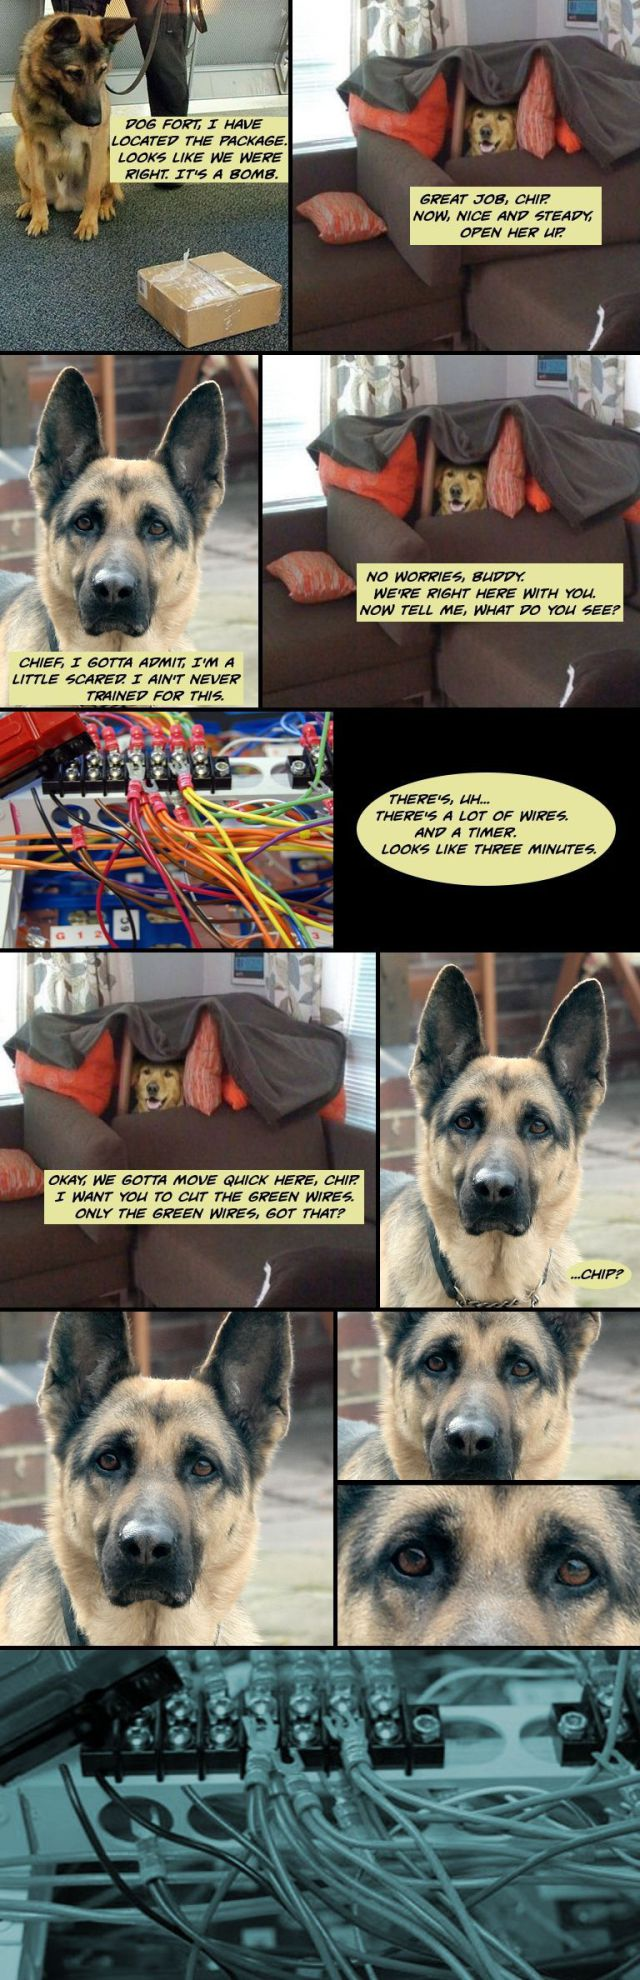 Dog Fort Comics and Memes